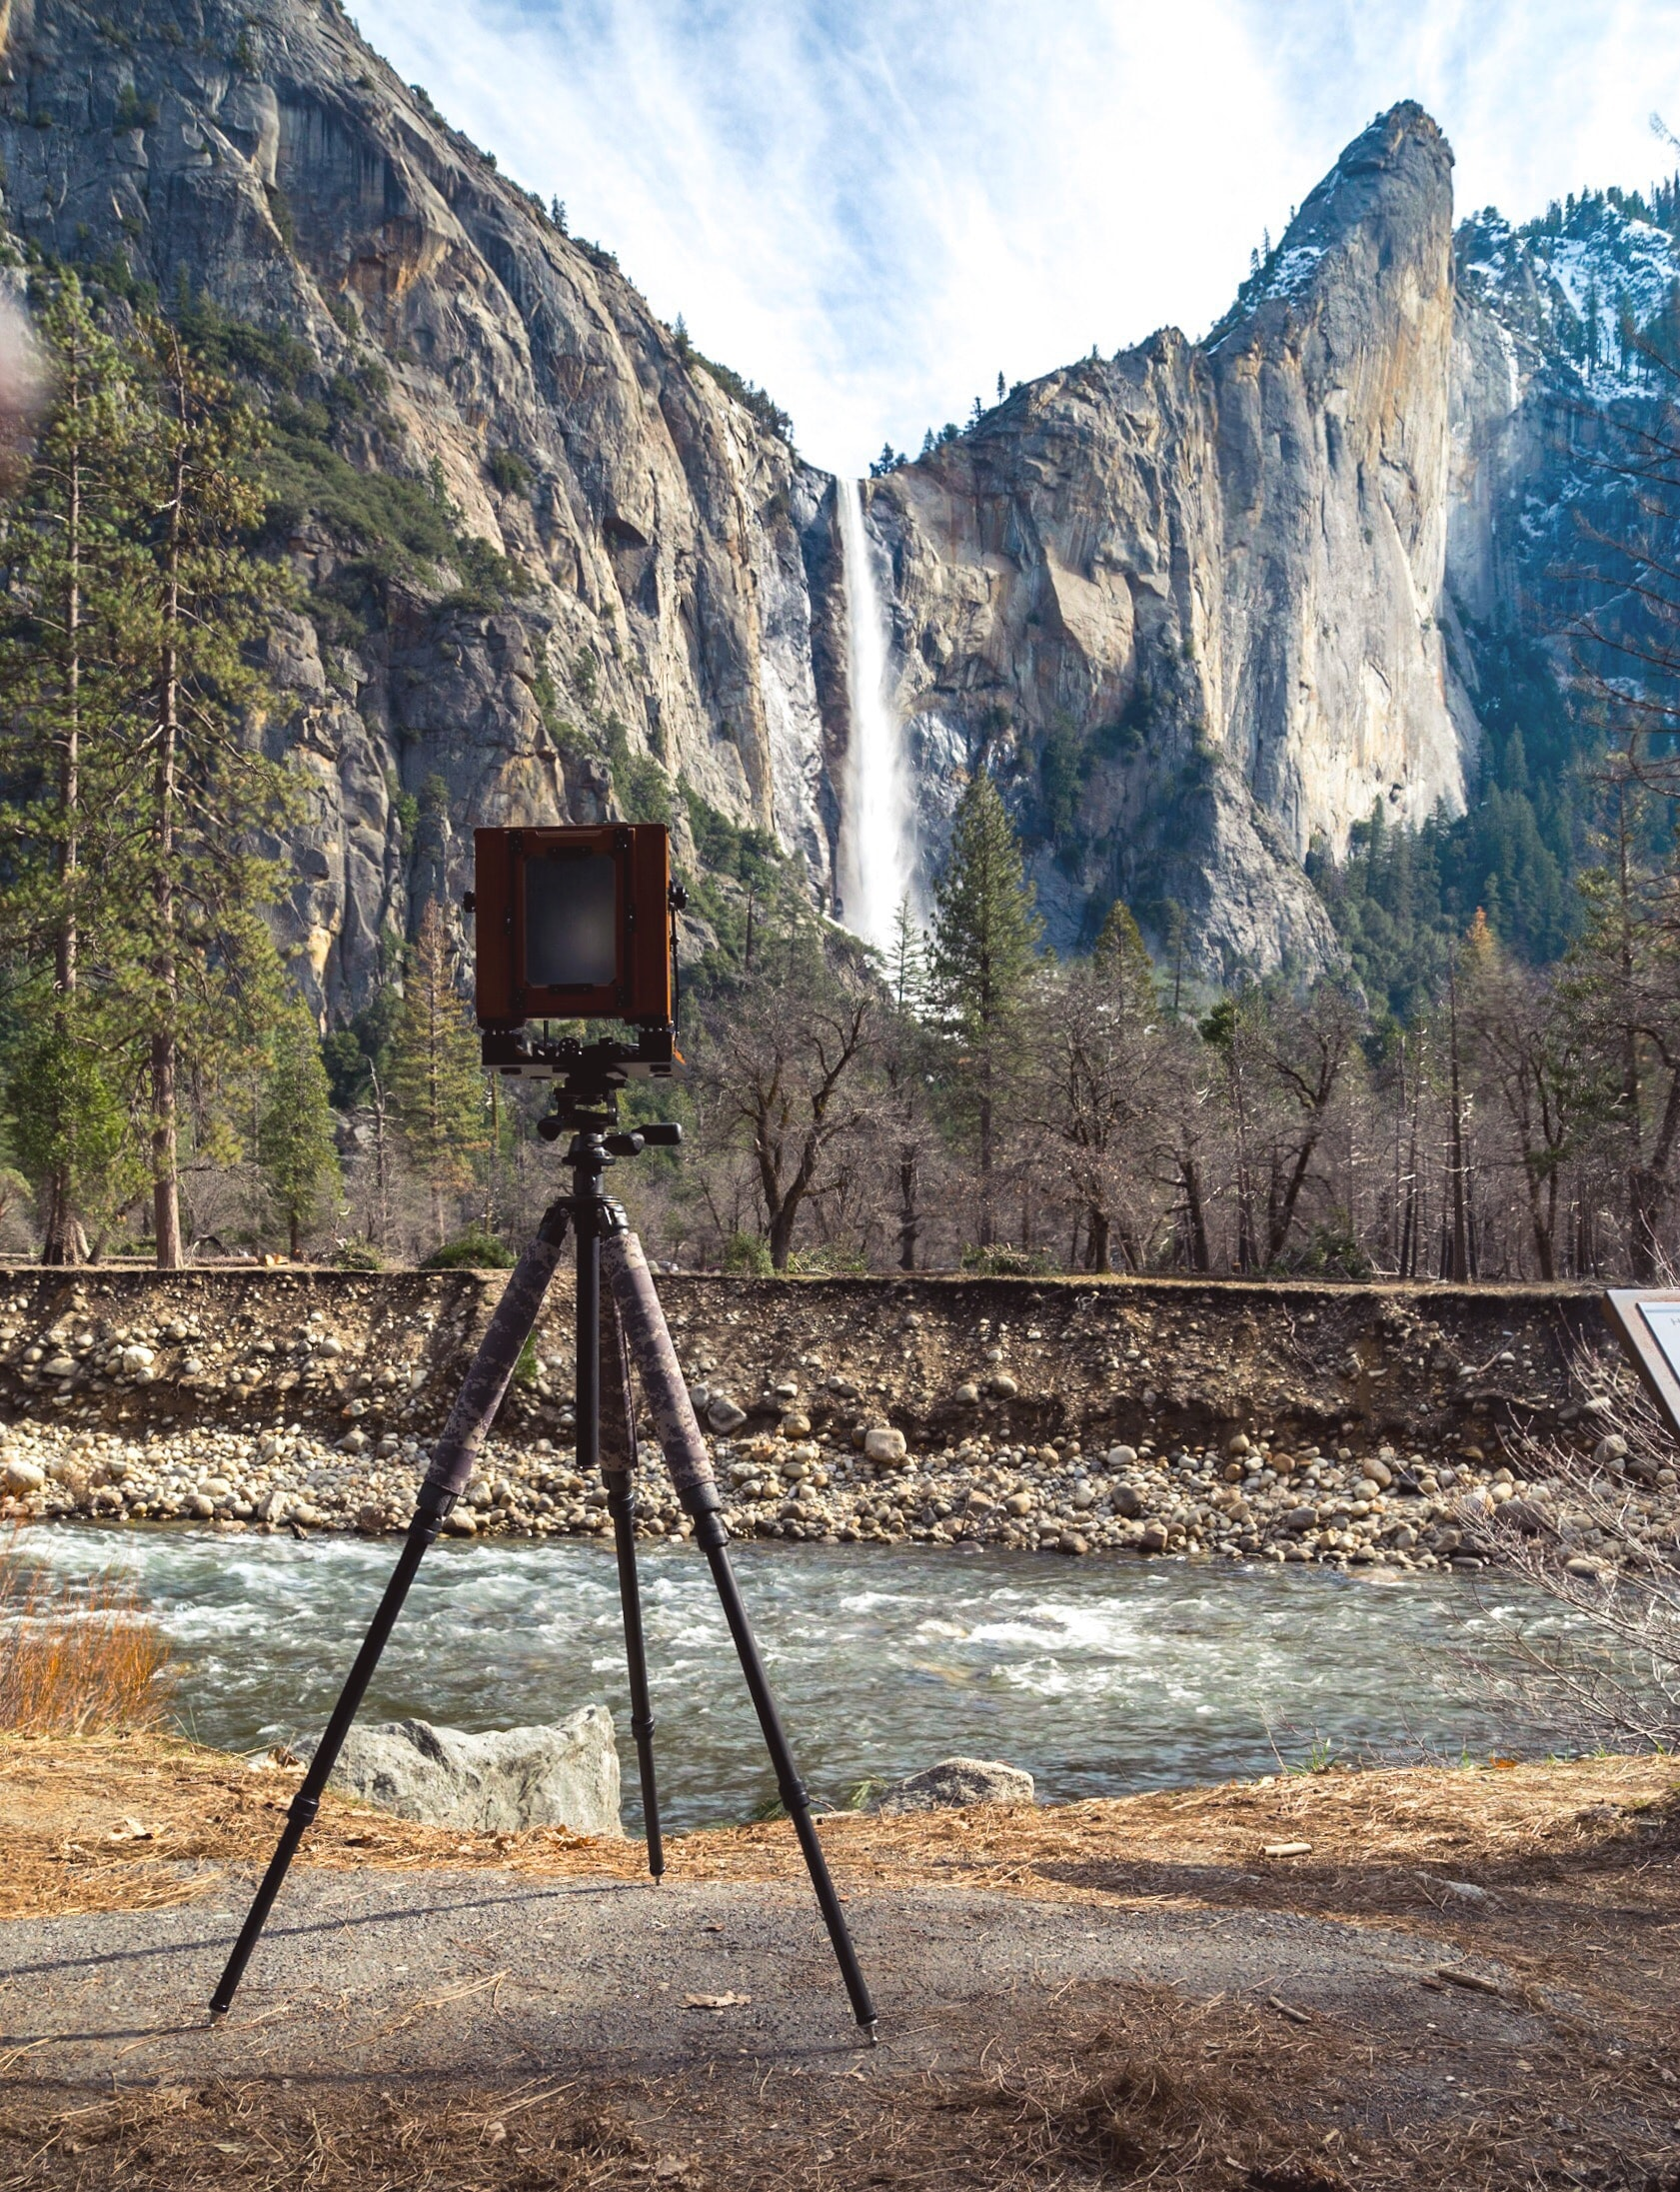 brown camera with tripod near on body of water